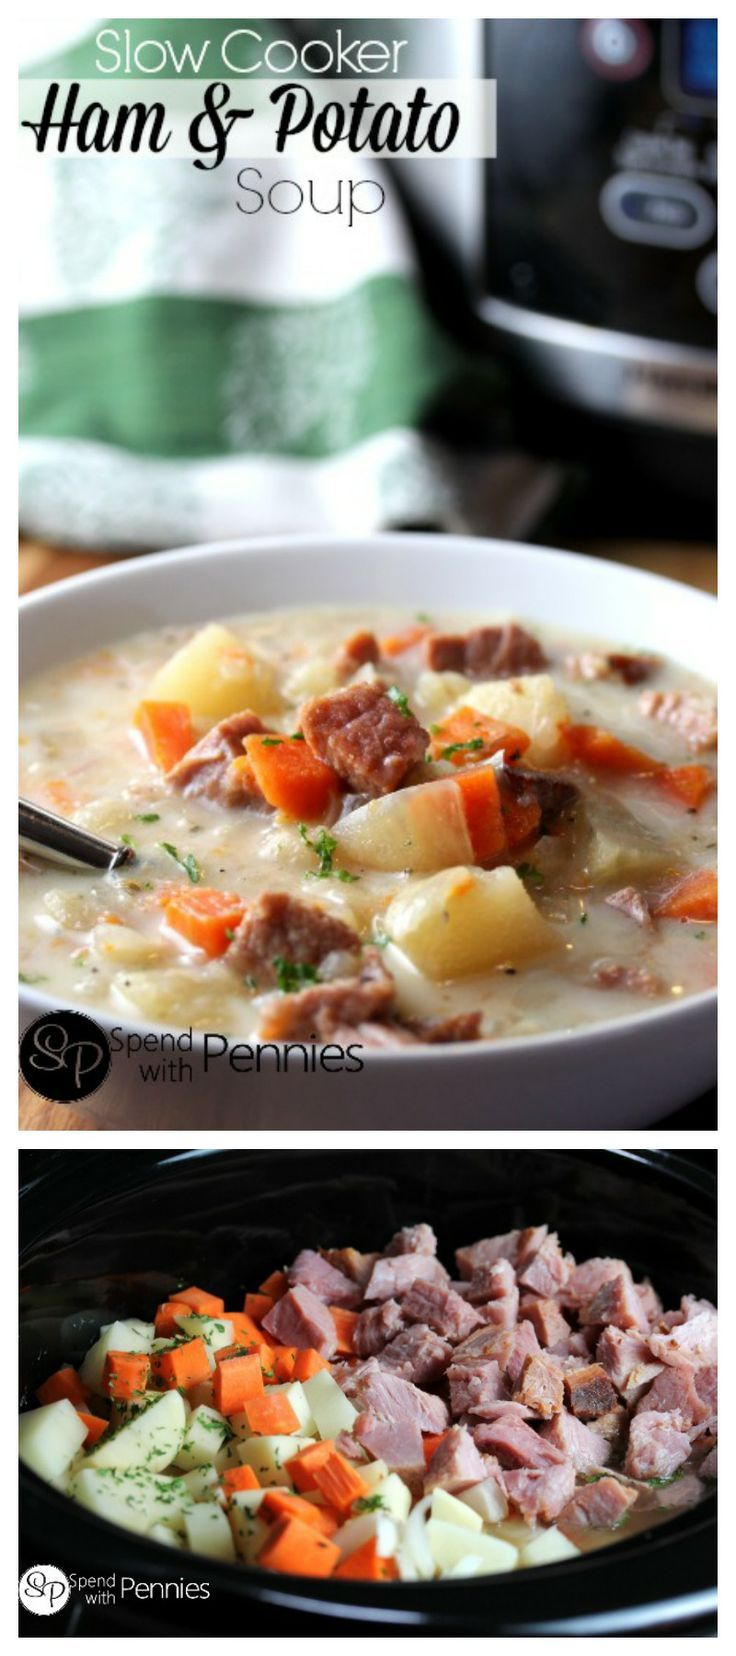 Delicious Ham & Potato soup in the slow cooker!  This is such a great meal to come home to! ♥